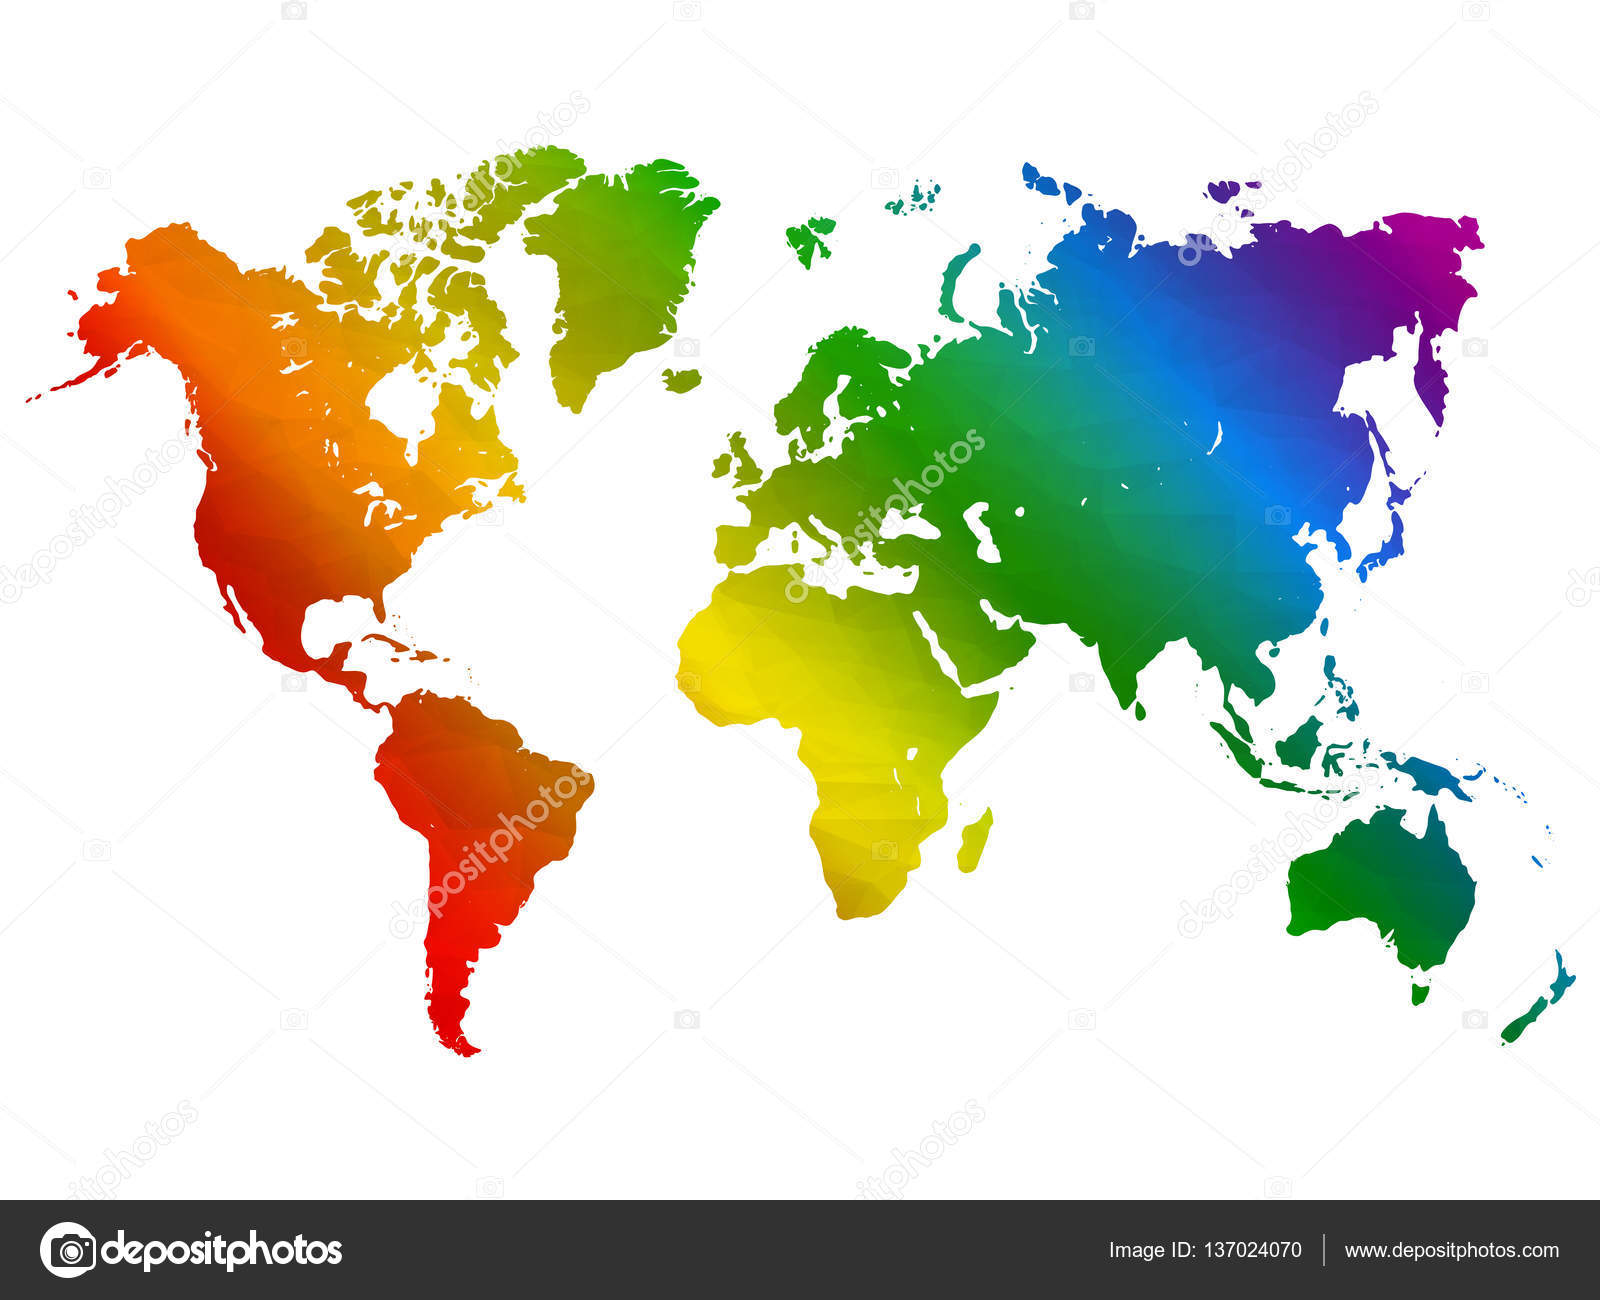 Rainbow world map colorful abstract geometrical background with rainbow world map colorful abstract geometrical background with triangular shapes vector illustration in lgbt colors symbol of peace gay culture gumiabroncs Images